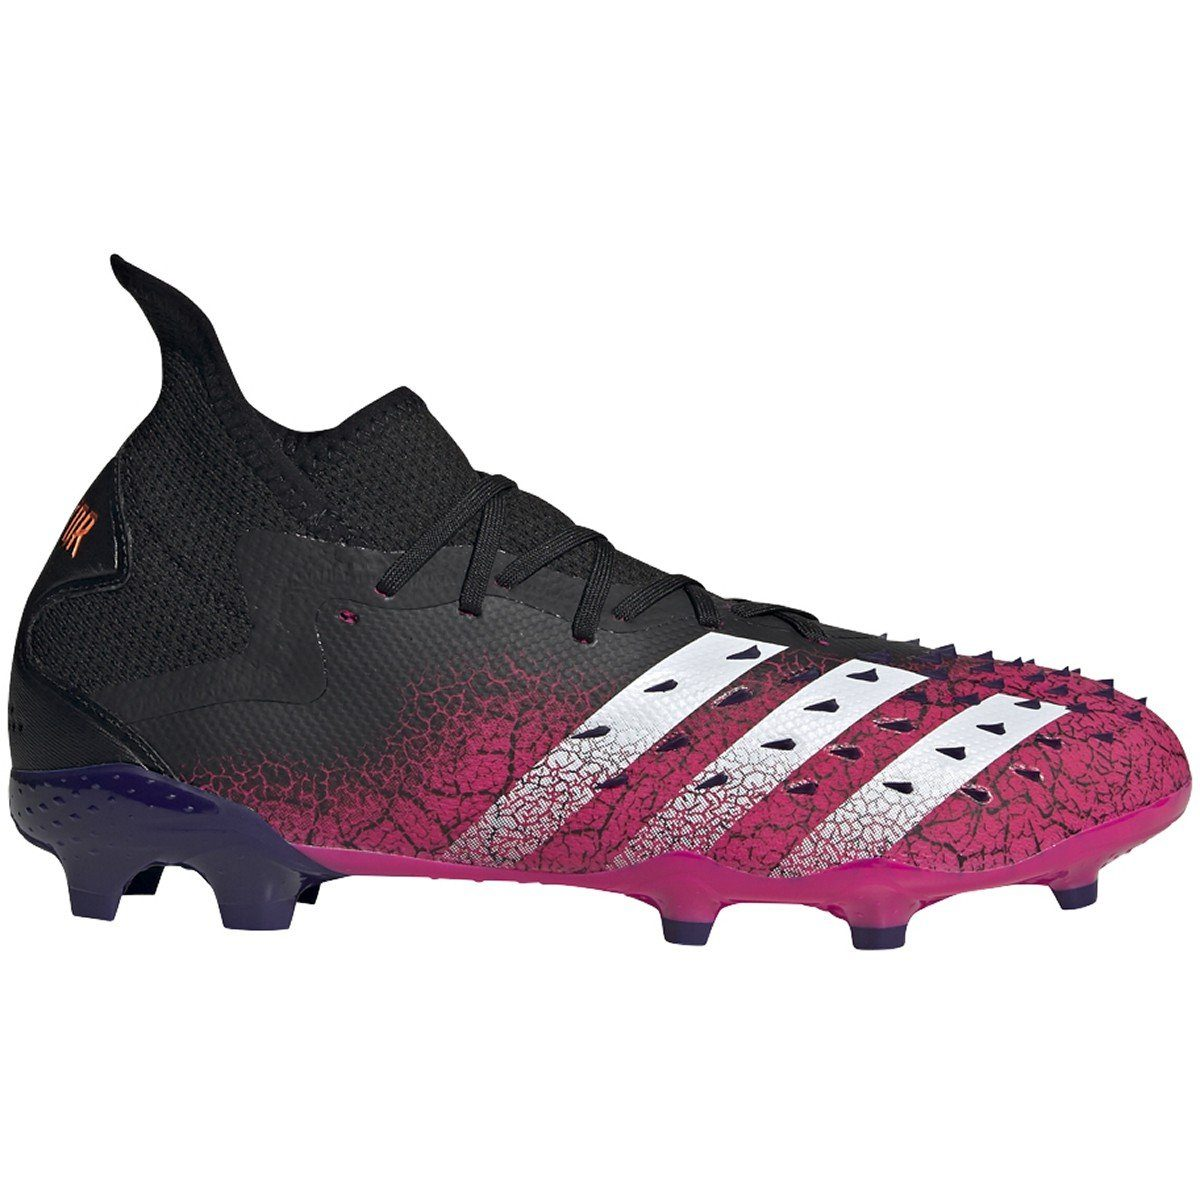 adidas Men's Predator Freak .2 Firm Ground Soccer Cleats | S42981 Soccer Shoes Adidas 7 Black/White/Shock Pink